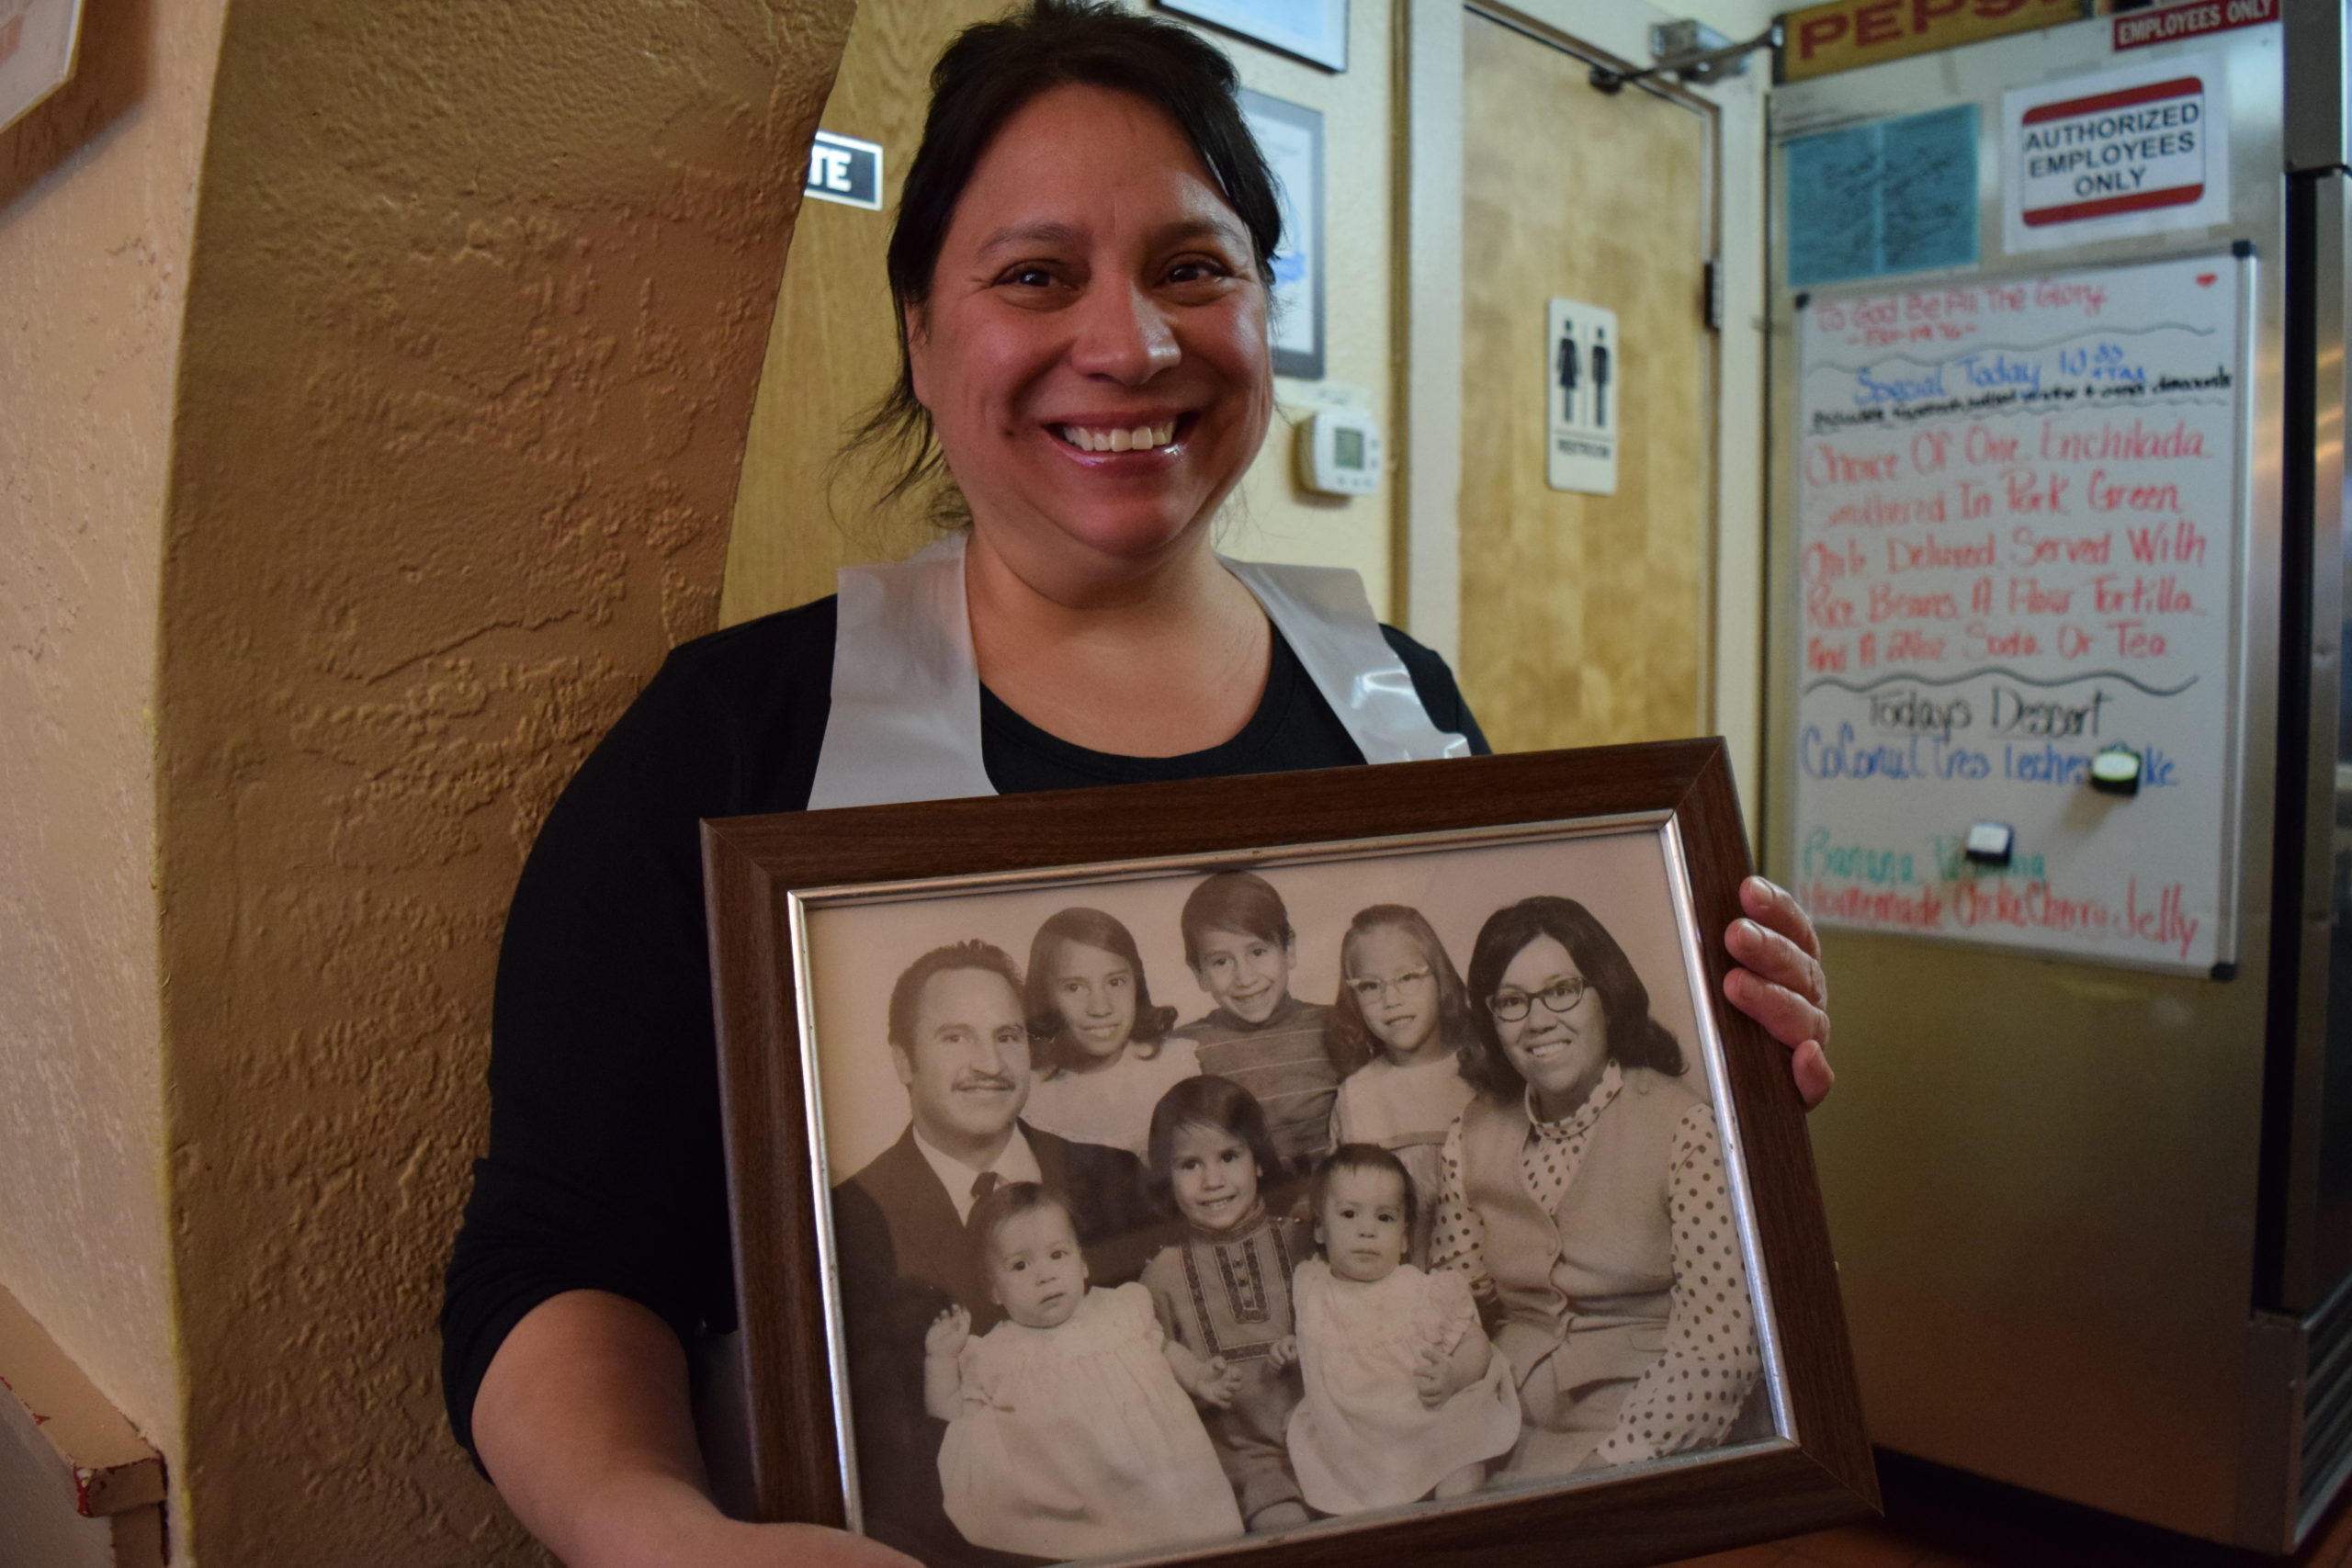 Judy Allen runs El Taco Rey in Colorado Springs with her sisters now. But her parents, Eddie and Rosemary Aguilar started the restaurant with their six kids in 1976.